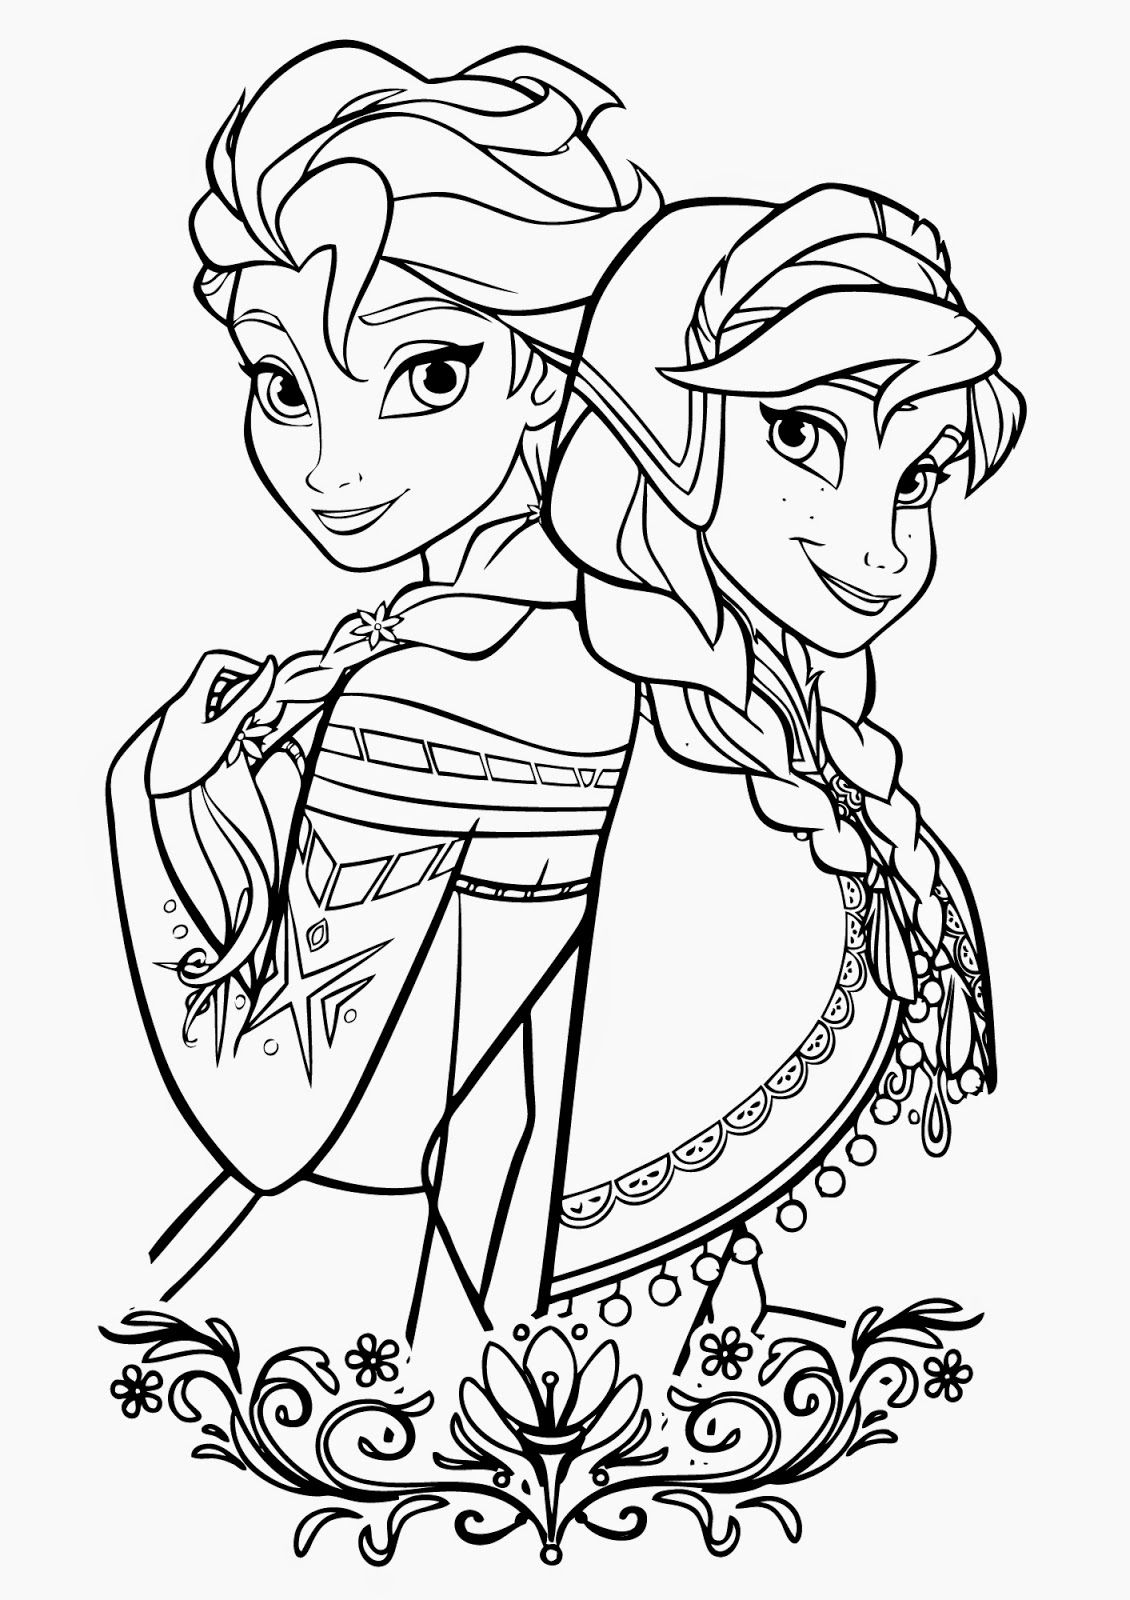 Explore Frozen Coloring Sheets And More